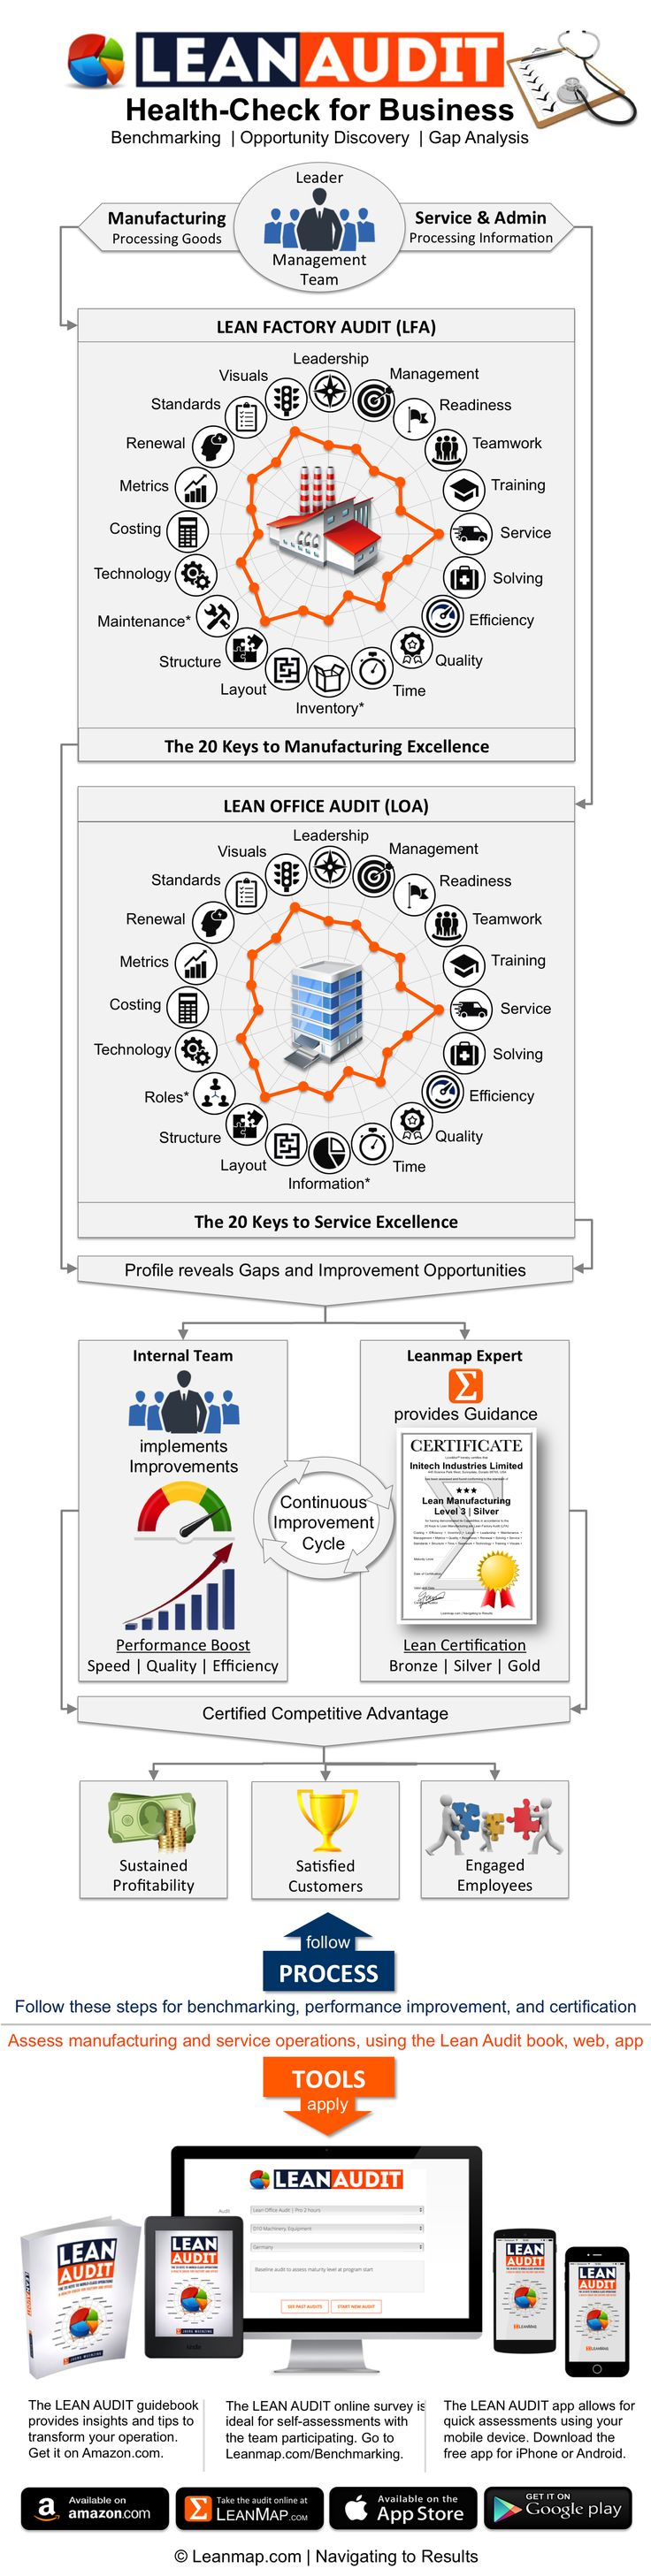 The Lean Audit is a health-check for business; an essential tool for managers and consultants to assess manufacturing and service operations based on the 20 keys to world-class operations. The Lean Audit flowchart explains the processes for operations diagnostics, performance improvement and lean certification. Insights gained will help you identify the opportunities and course-corrections that ultimately lead to higher performance levels, while gaining a competitive edge from a lean…